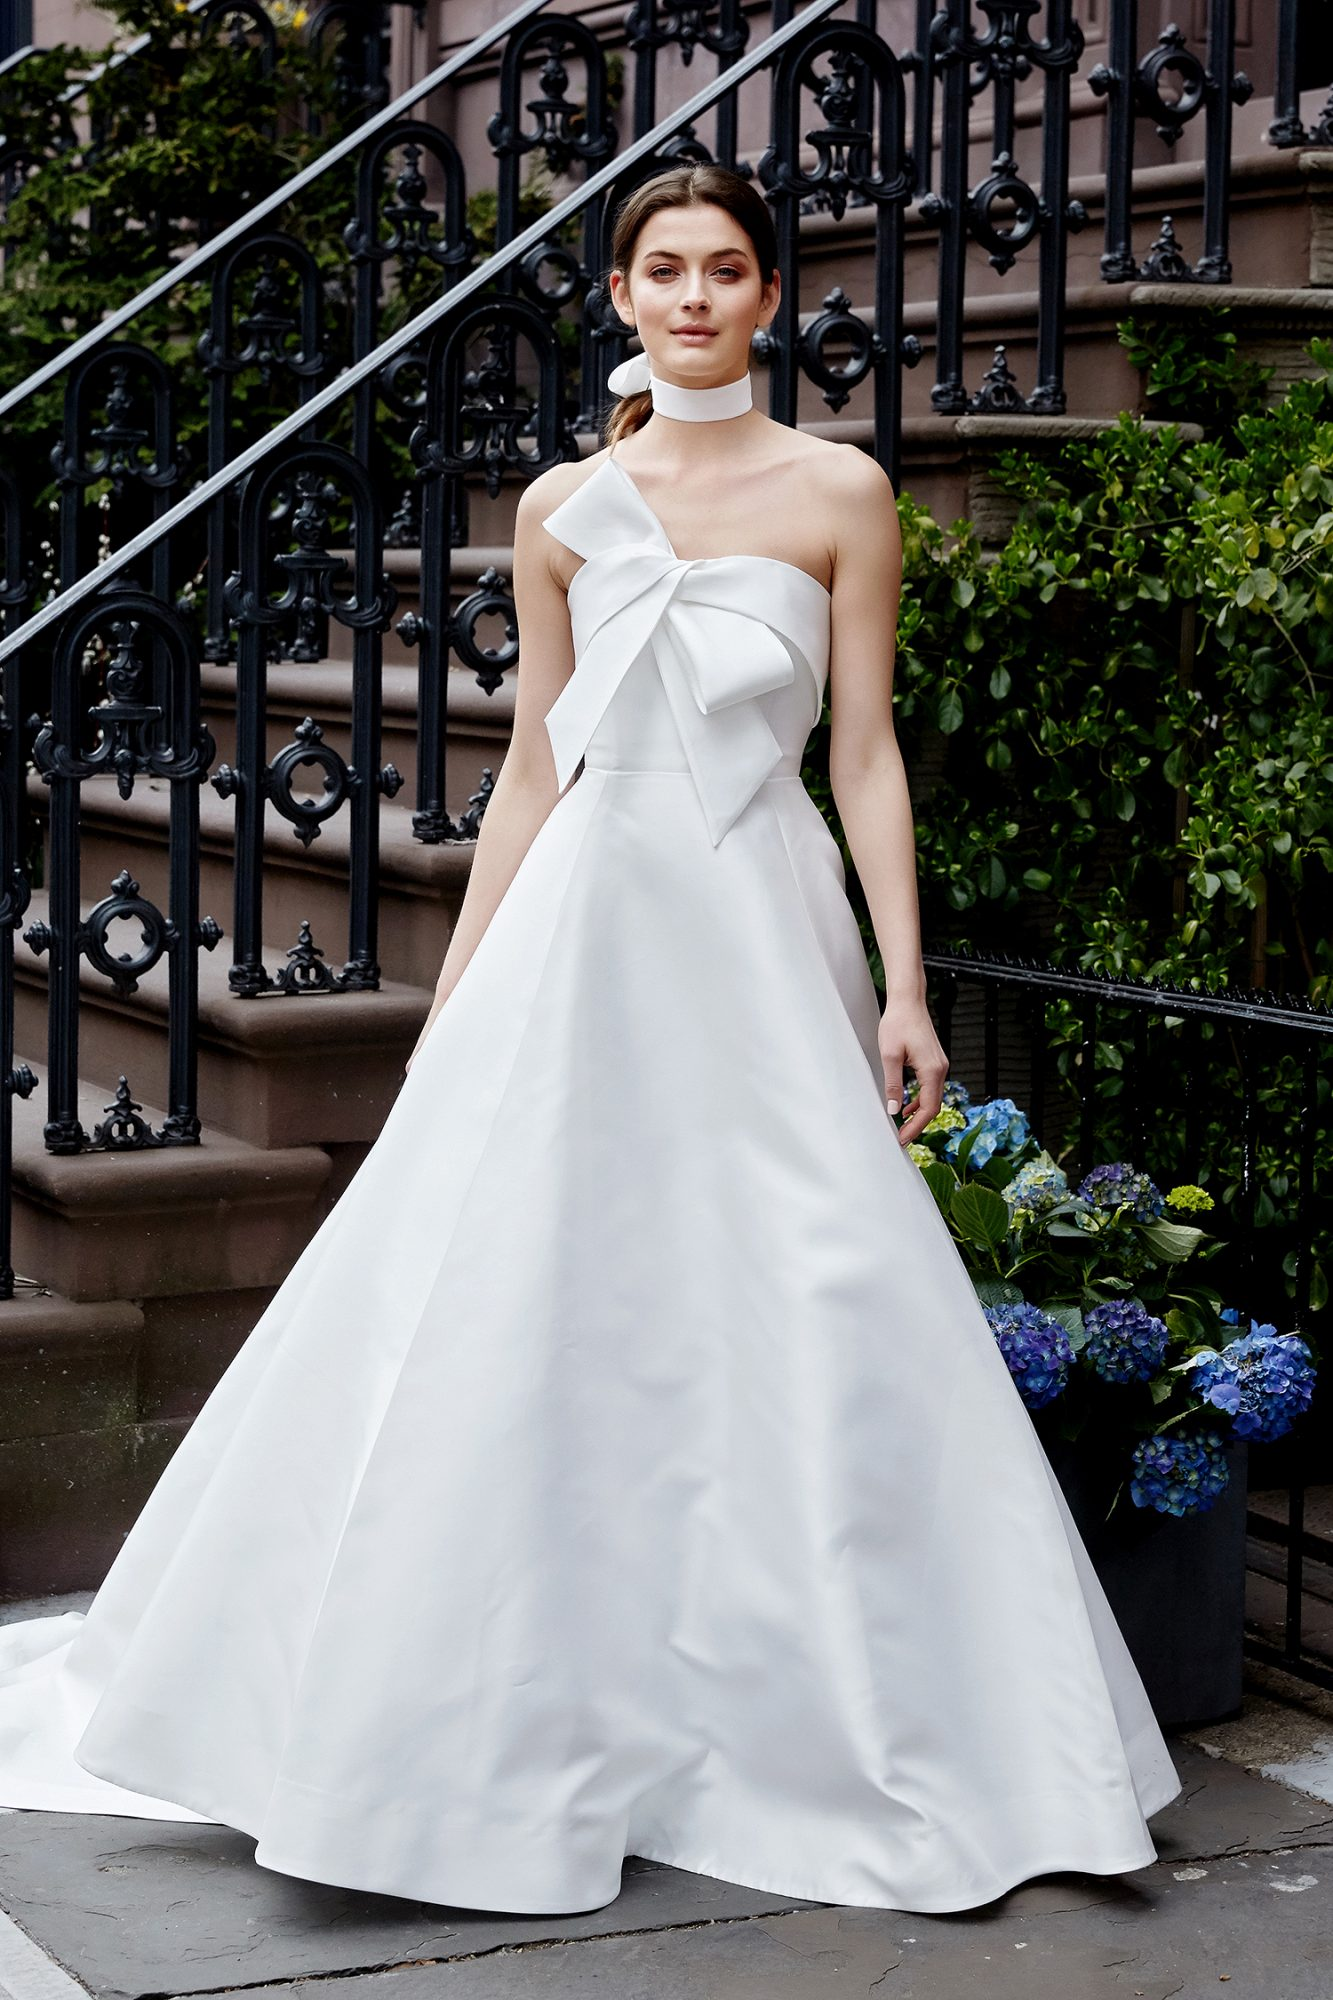 lela rose wedding dress spring 2019 strapless with front bow accent